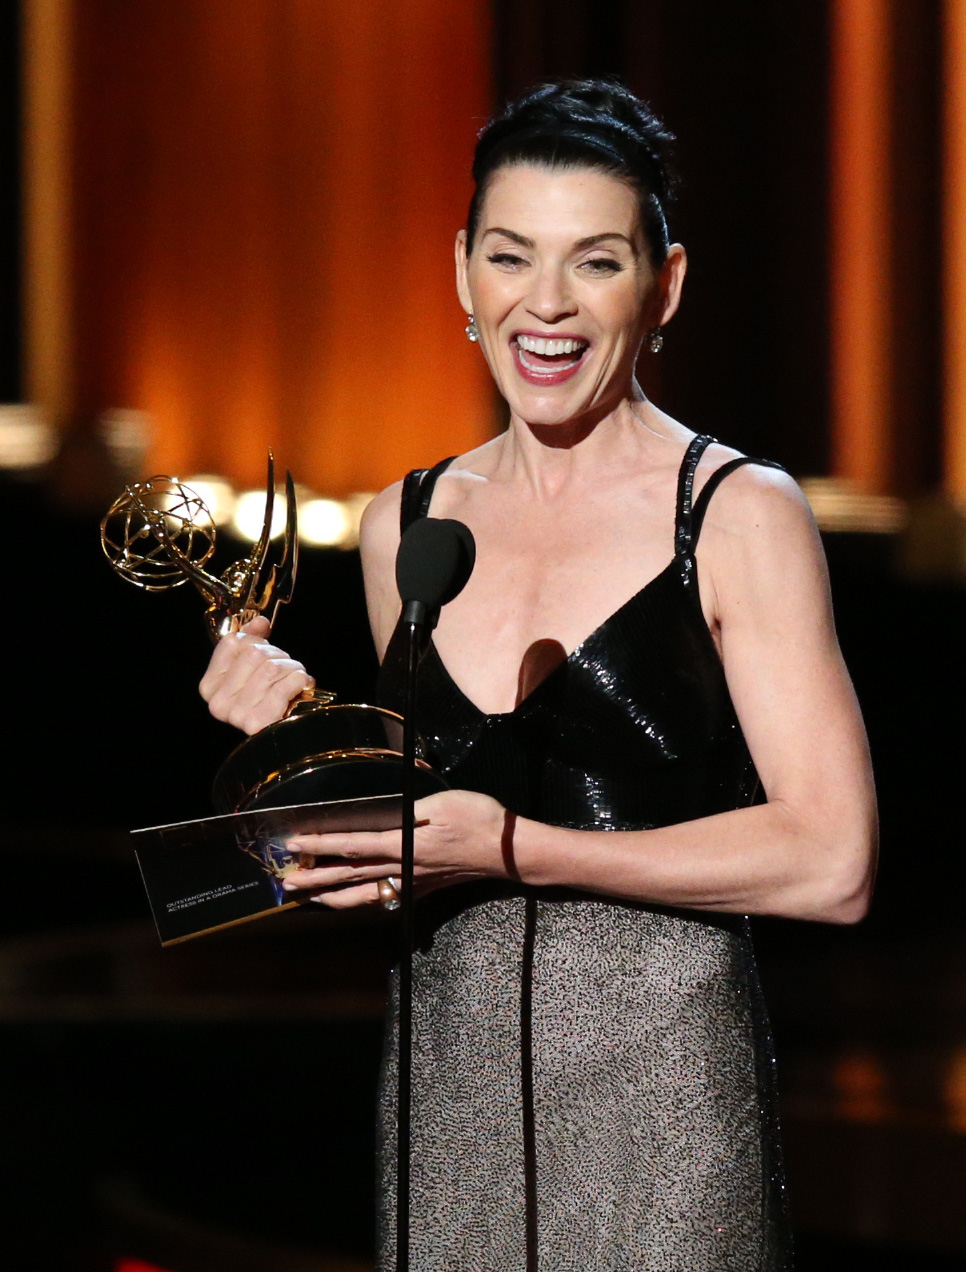 Actress Julianna Margulies accepts the Outstanding Lead Actress in a Drama Series award for 'The Good Wife' on stage during the 66th Annual Primetime Emmy Awards held at the Nokia Theater on August 25, 2014.